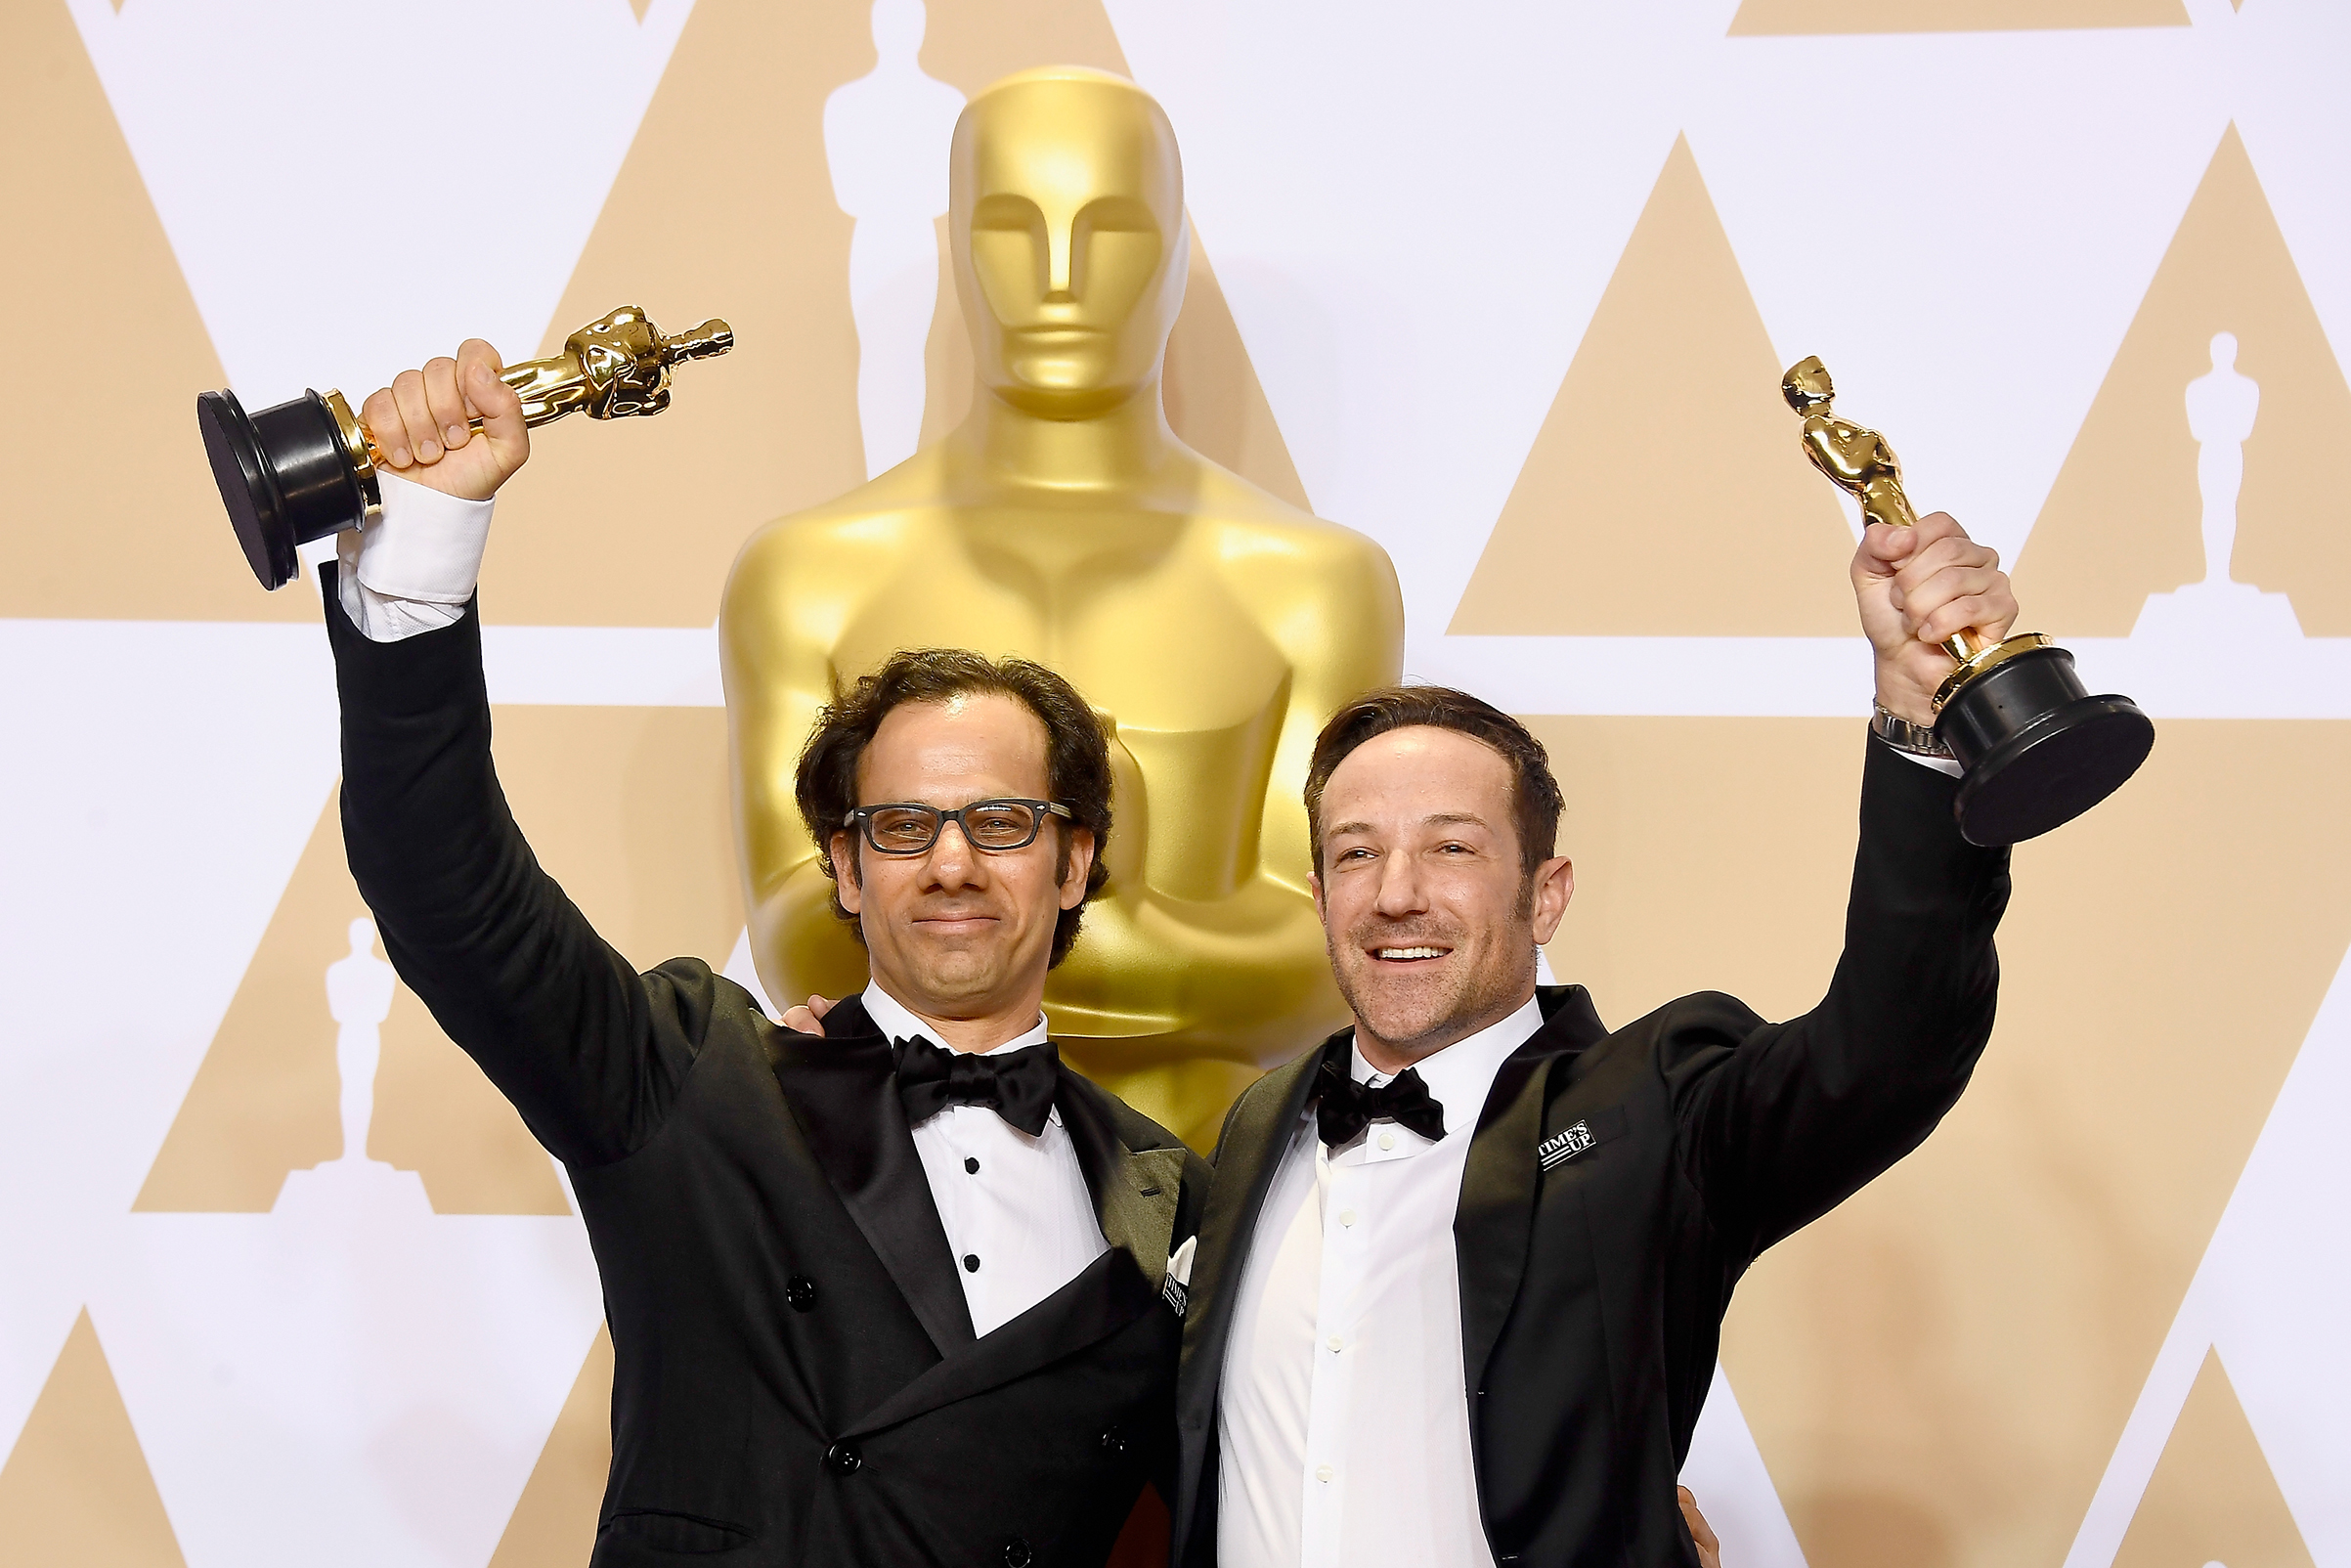 Producer Dan Cogan and director Bryan Fogel, winners of the Best Documentary Feature award for 'Icarus,' pose in the press room during the 90th Annual Academy Awards at Hollywood & Highland Center on March 4, 2018 in Hollywood.